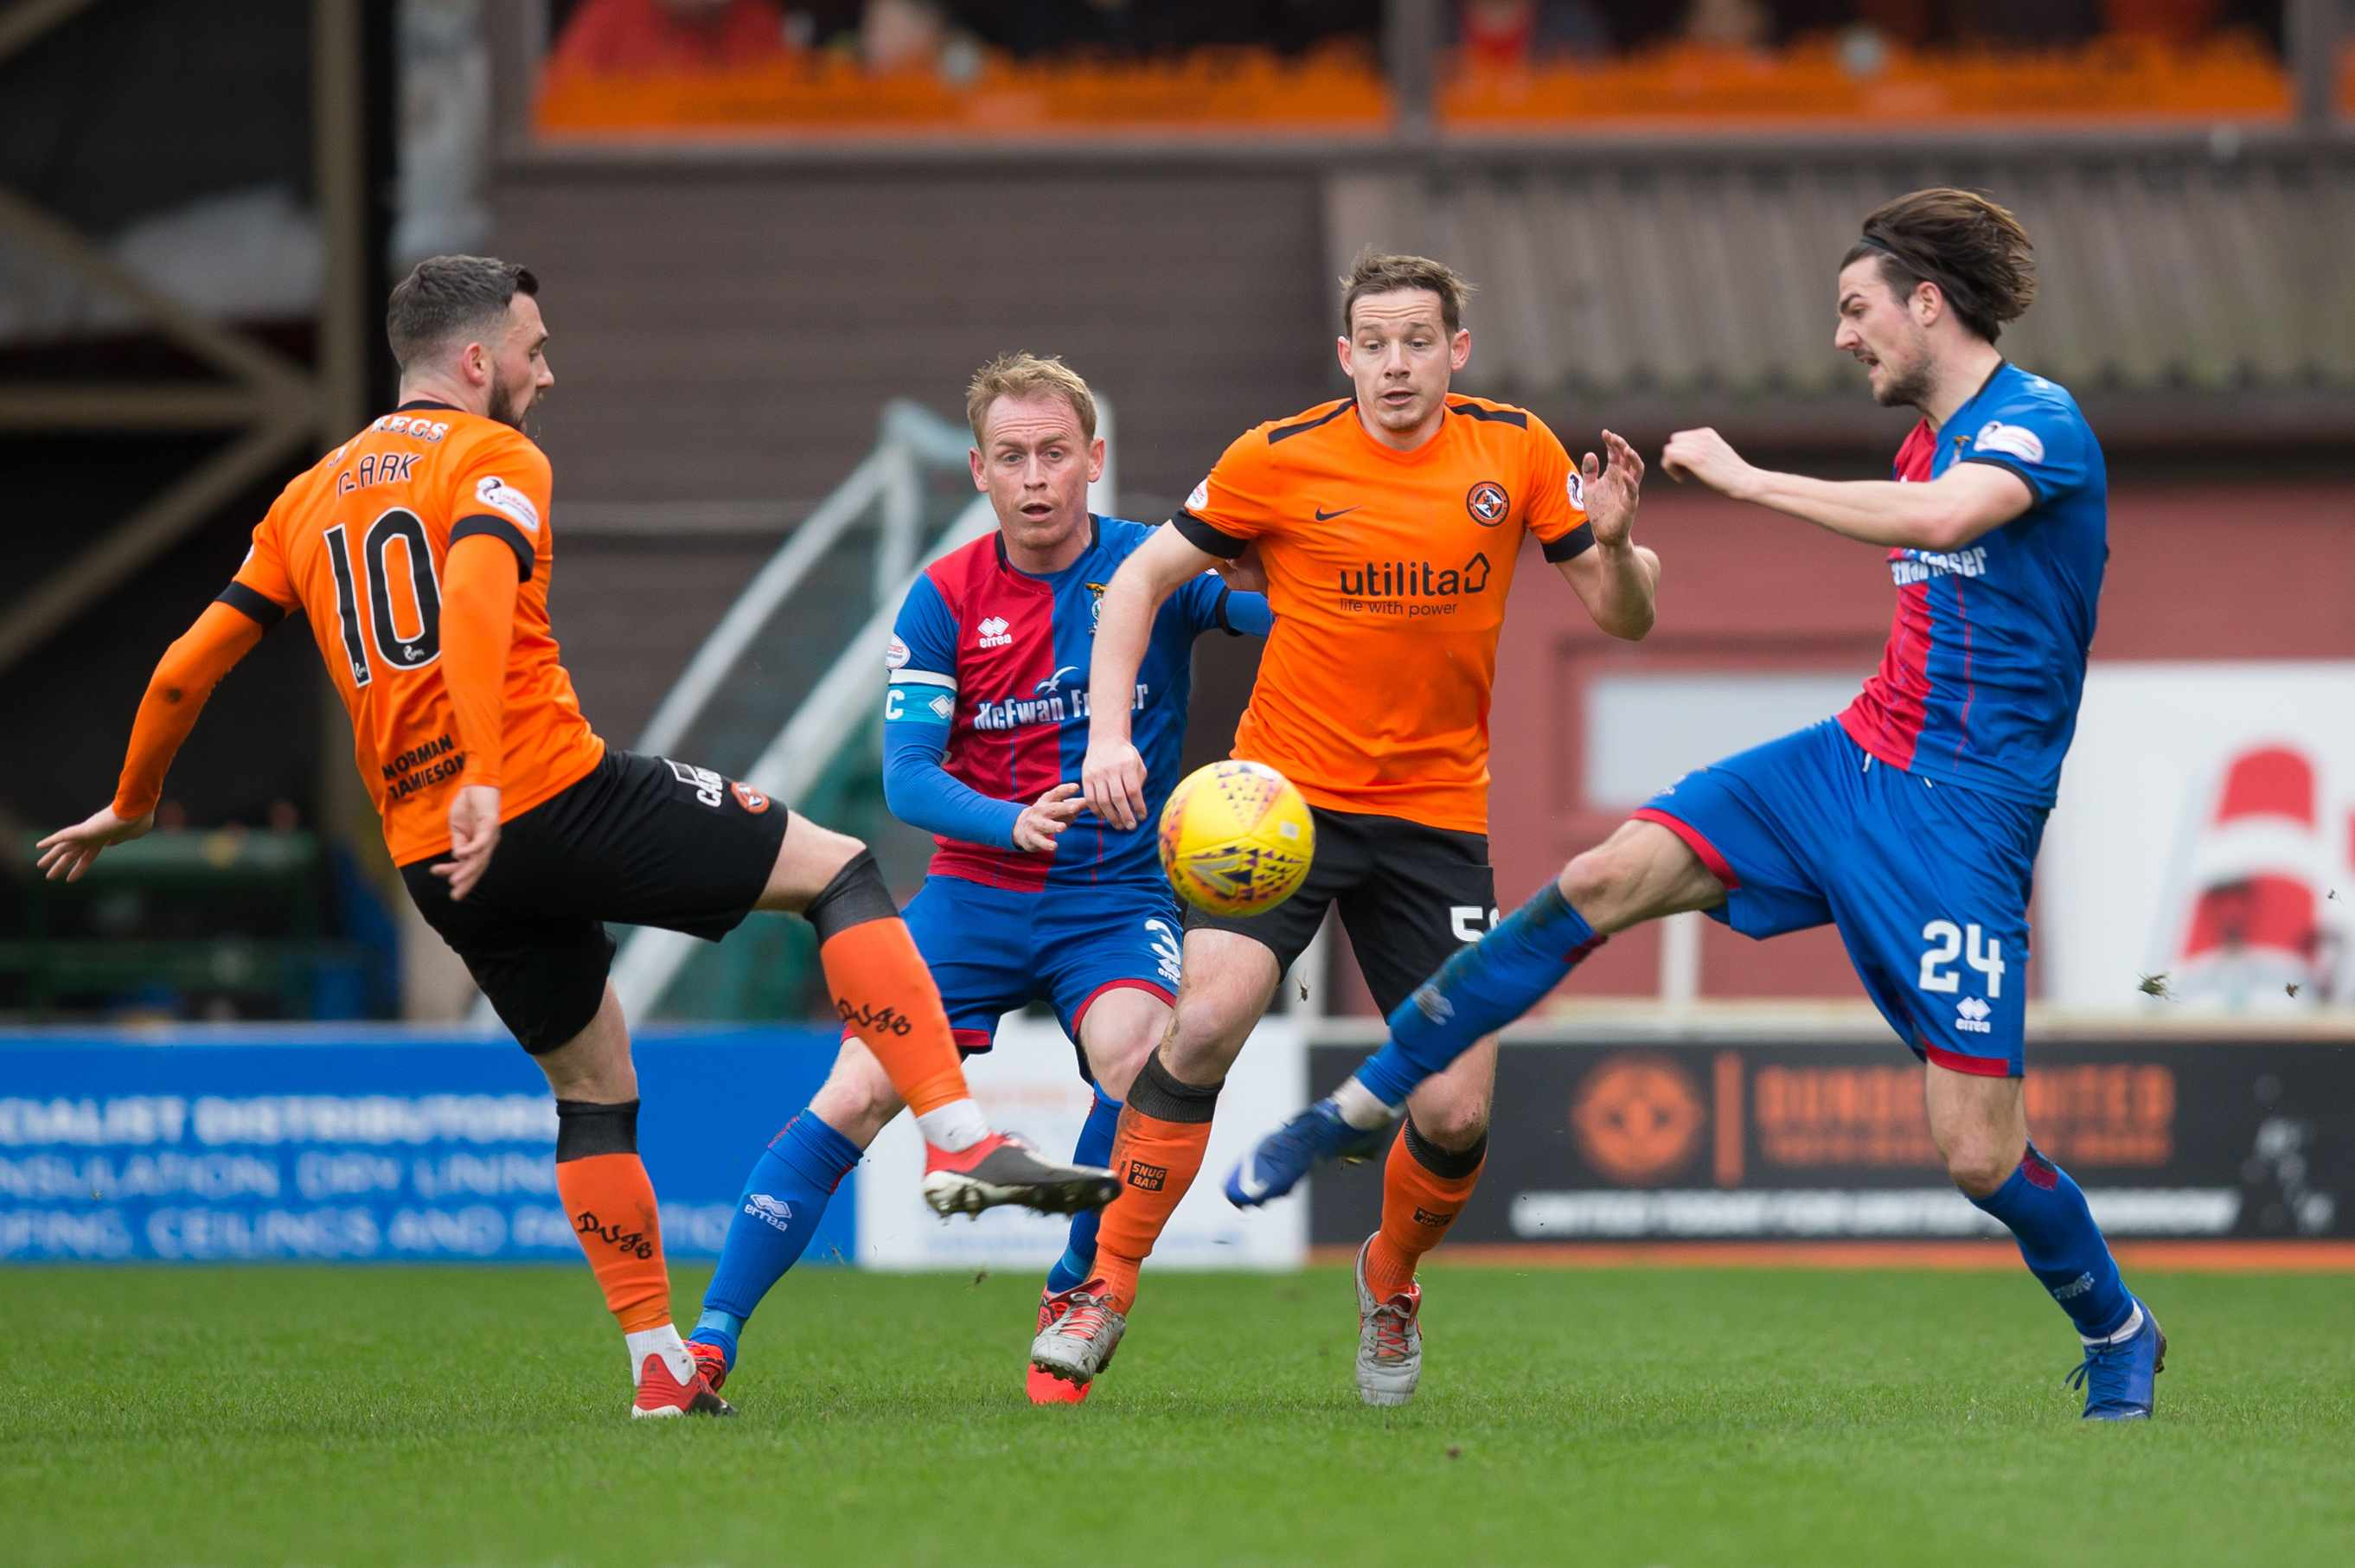 Dundee United Inverness